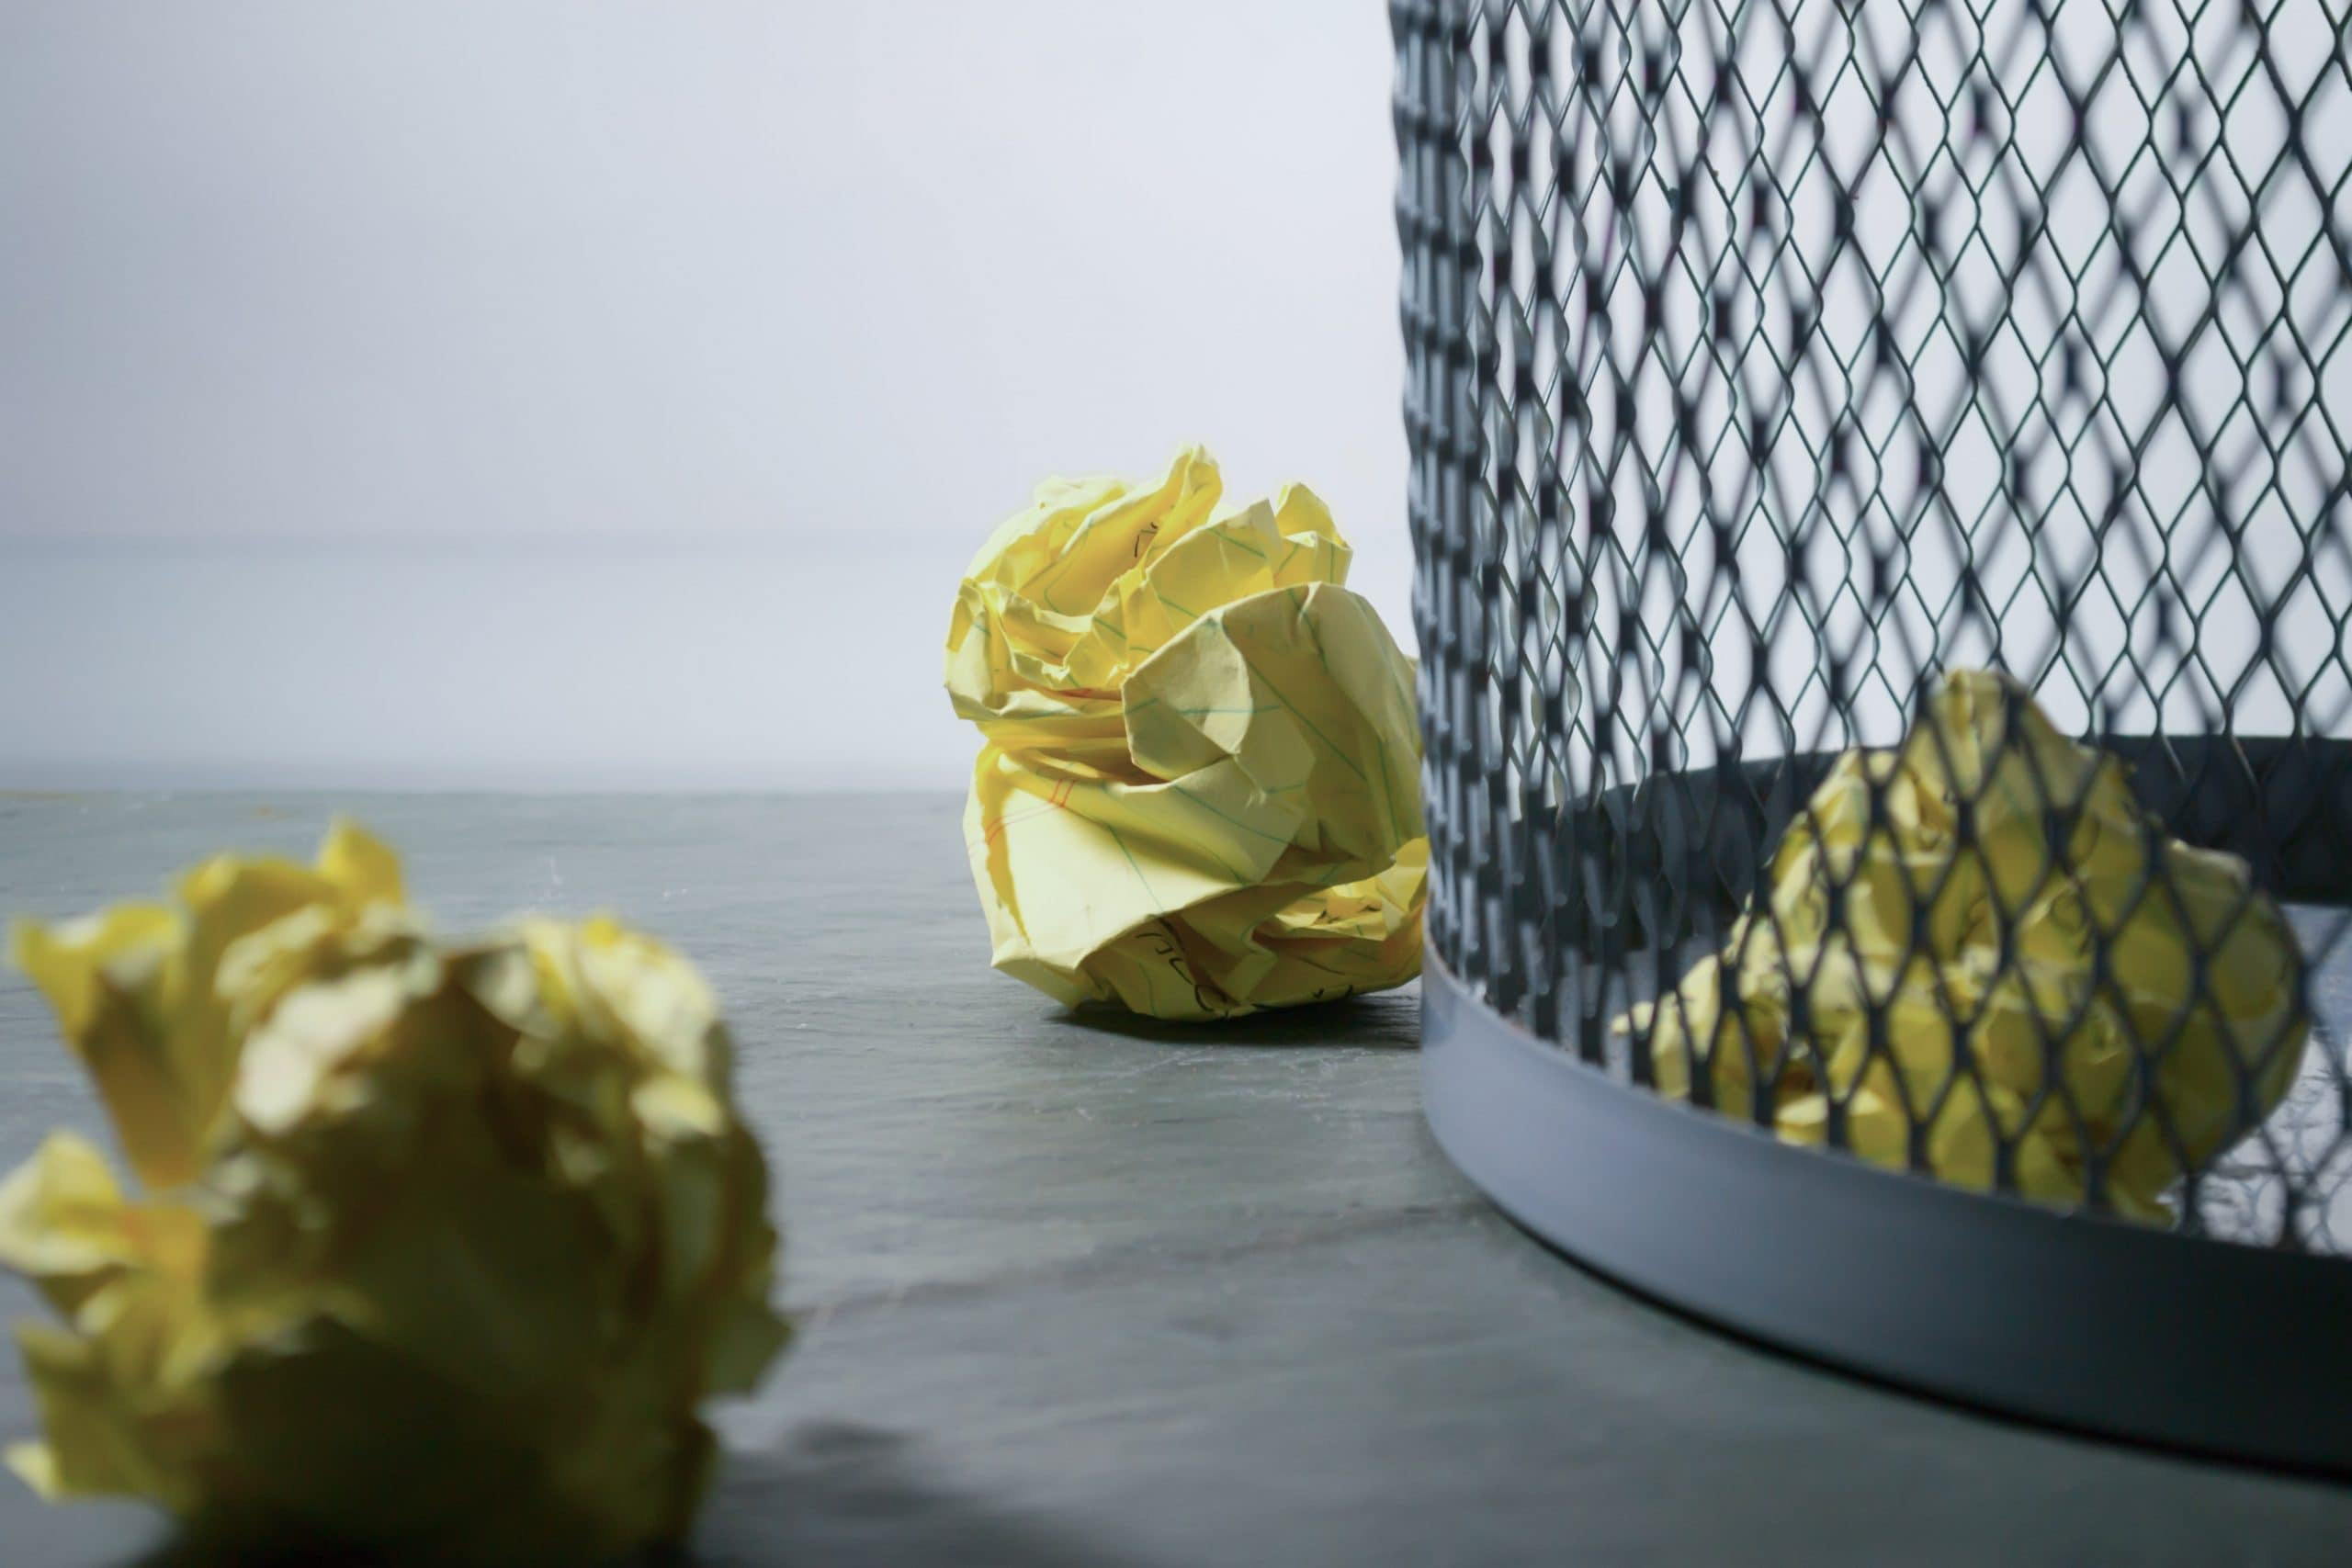 Bin with several pieces of scrunched up yellow paper in it and near it